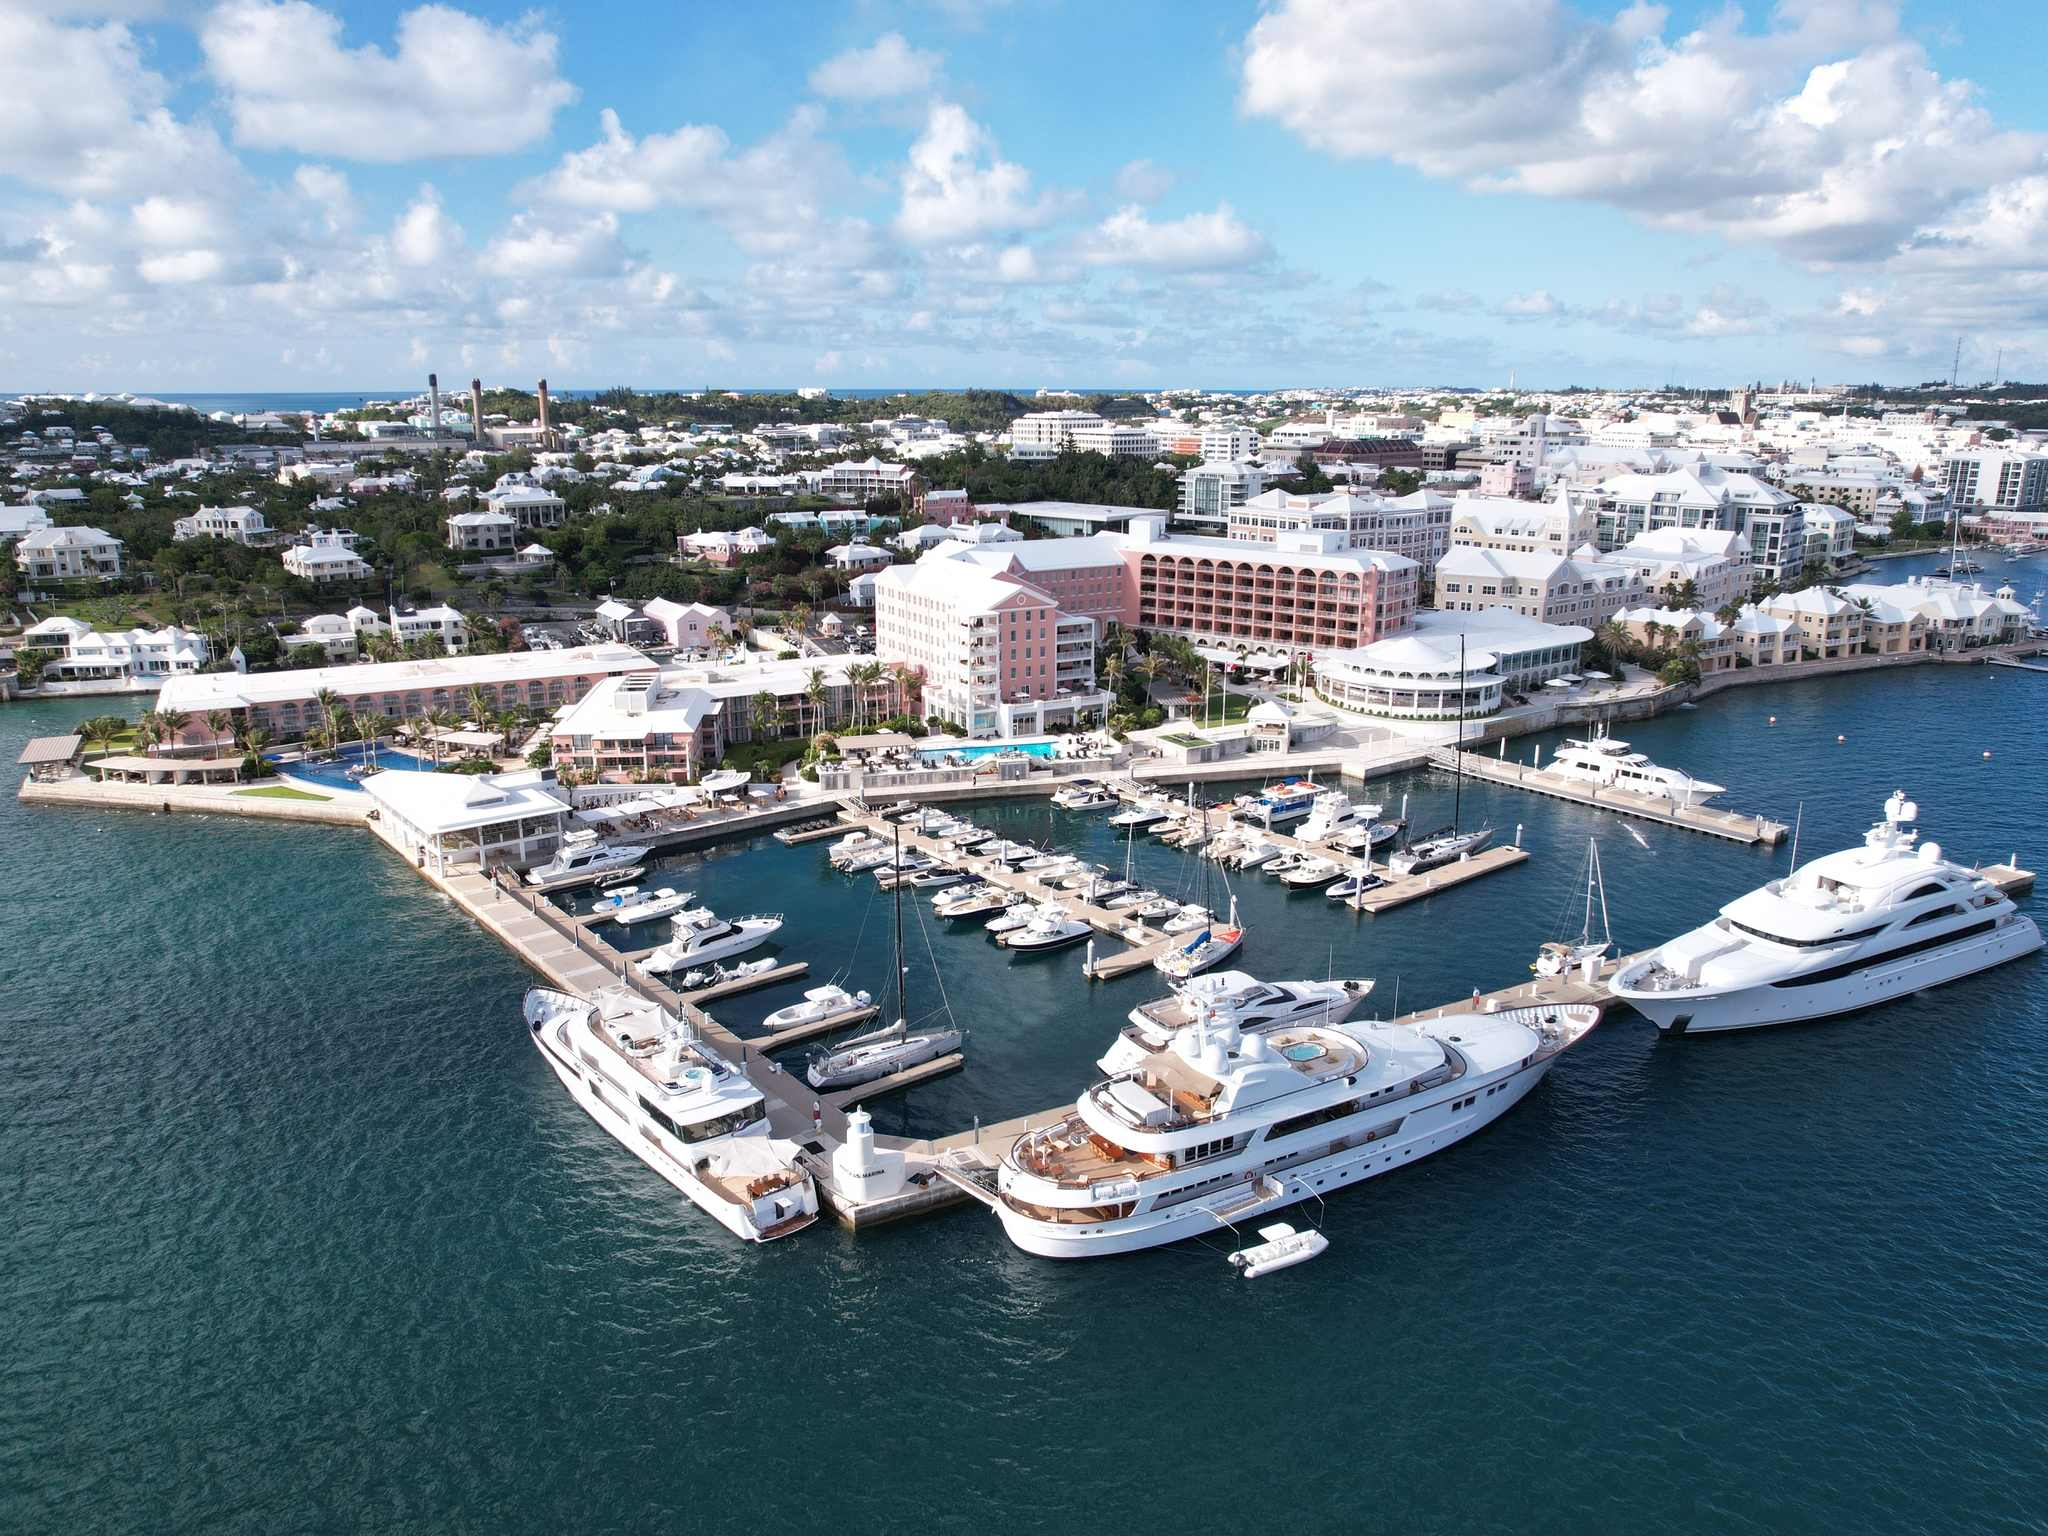 Hotel - Hamilton Princess & Beach Club - A Fairmont Managed Hotel